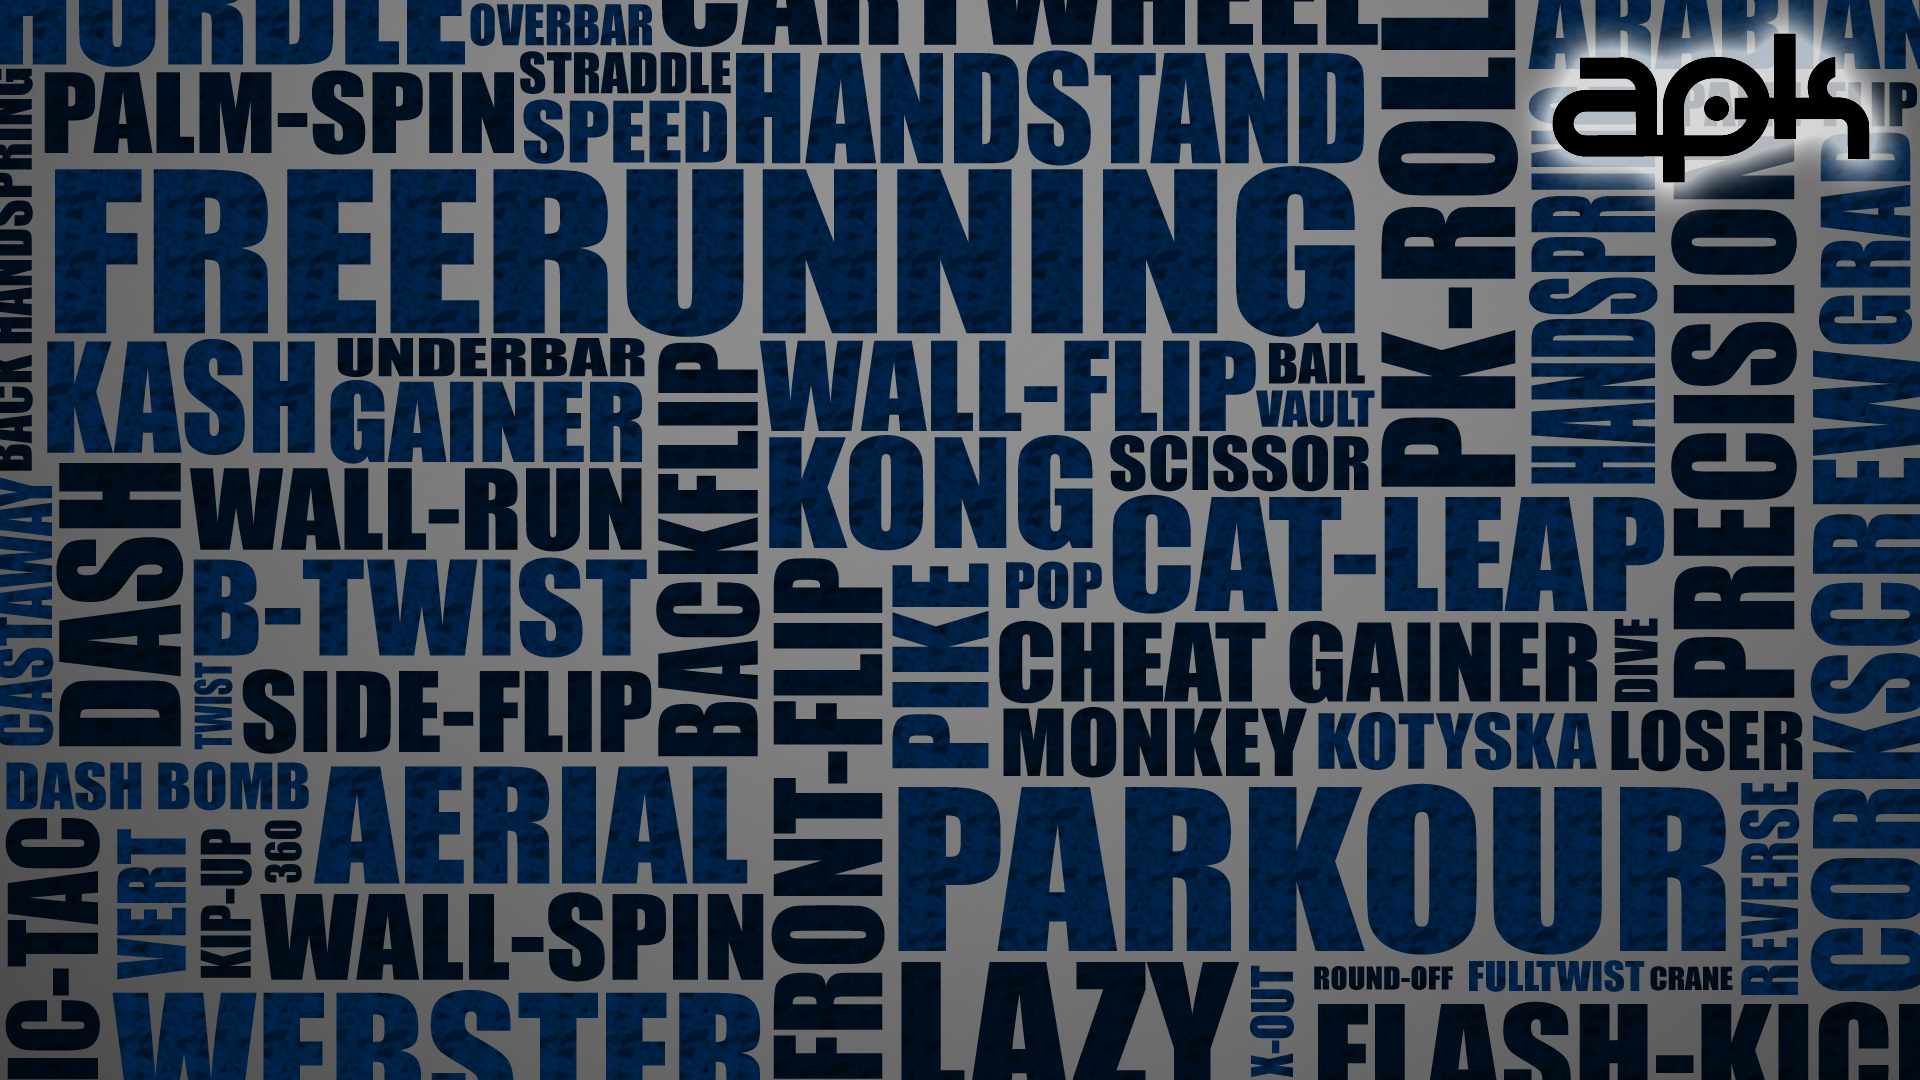 Typography parkour HD Wallpaper